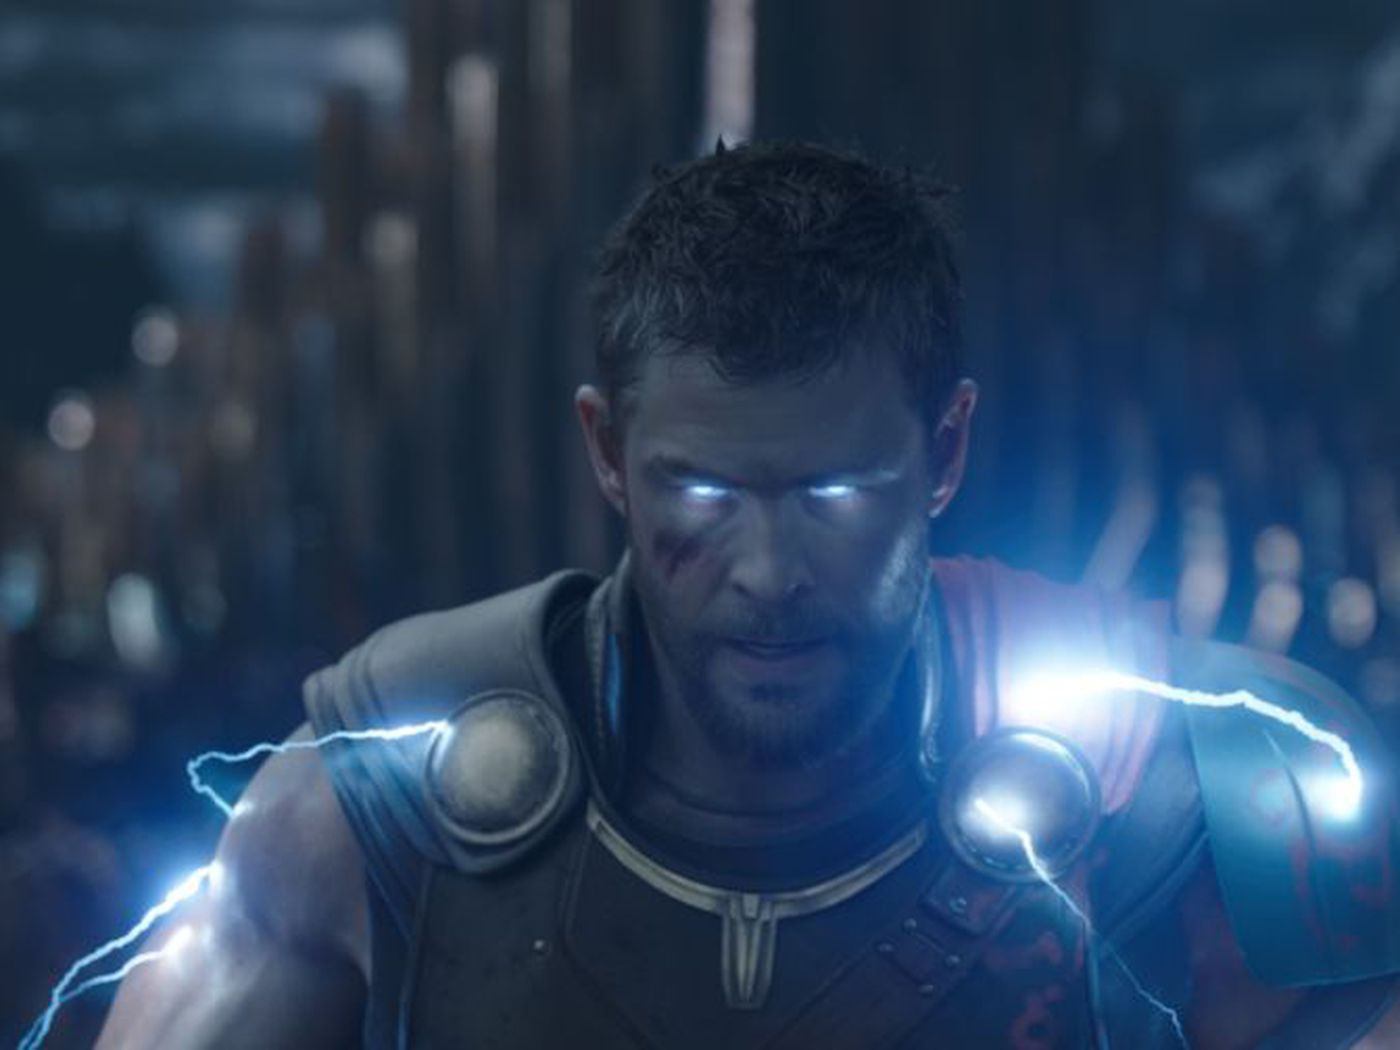 Thor: Ragnarok director Taika Waititi had to have this Led Zeppelin